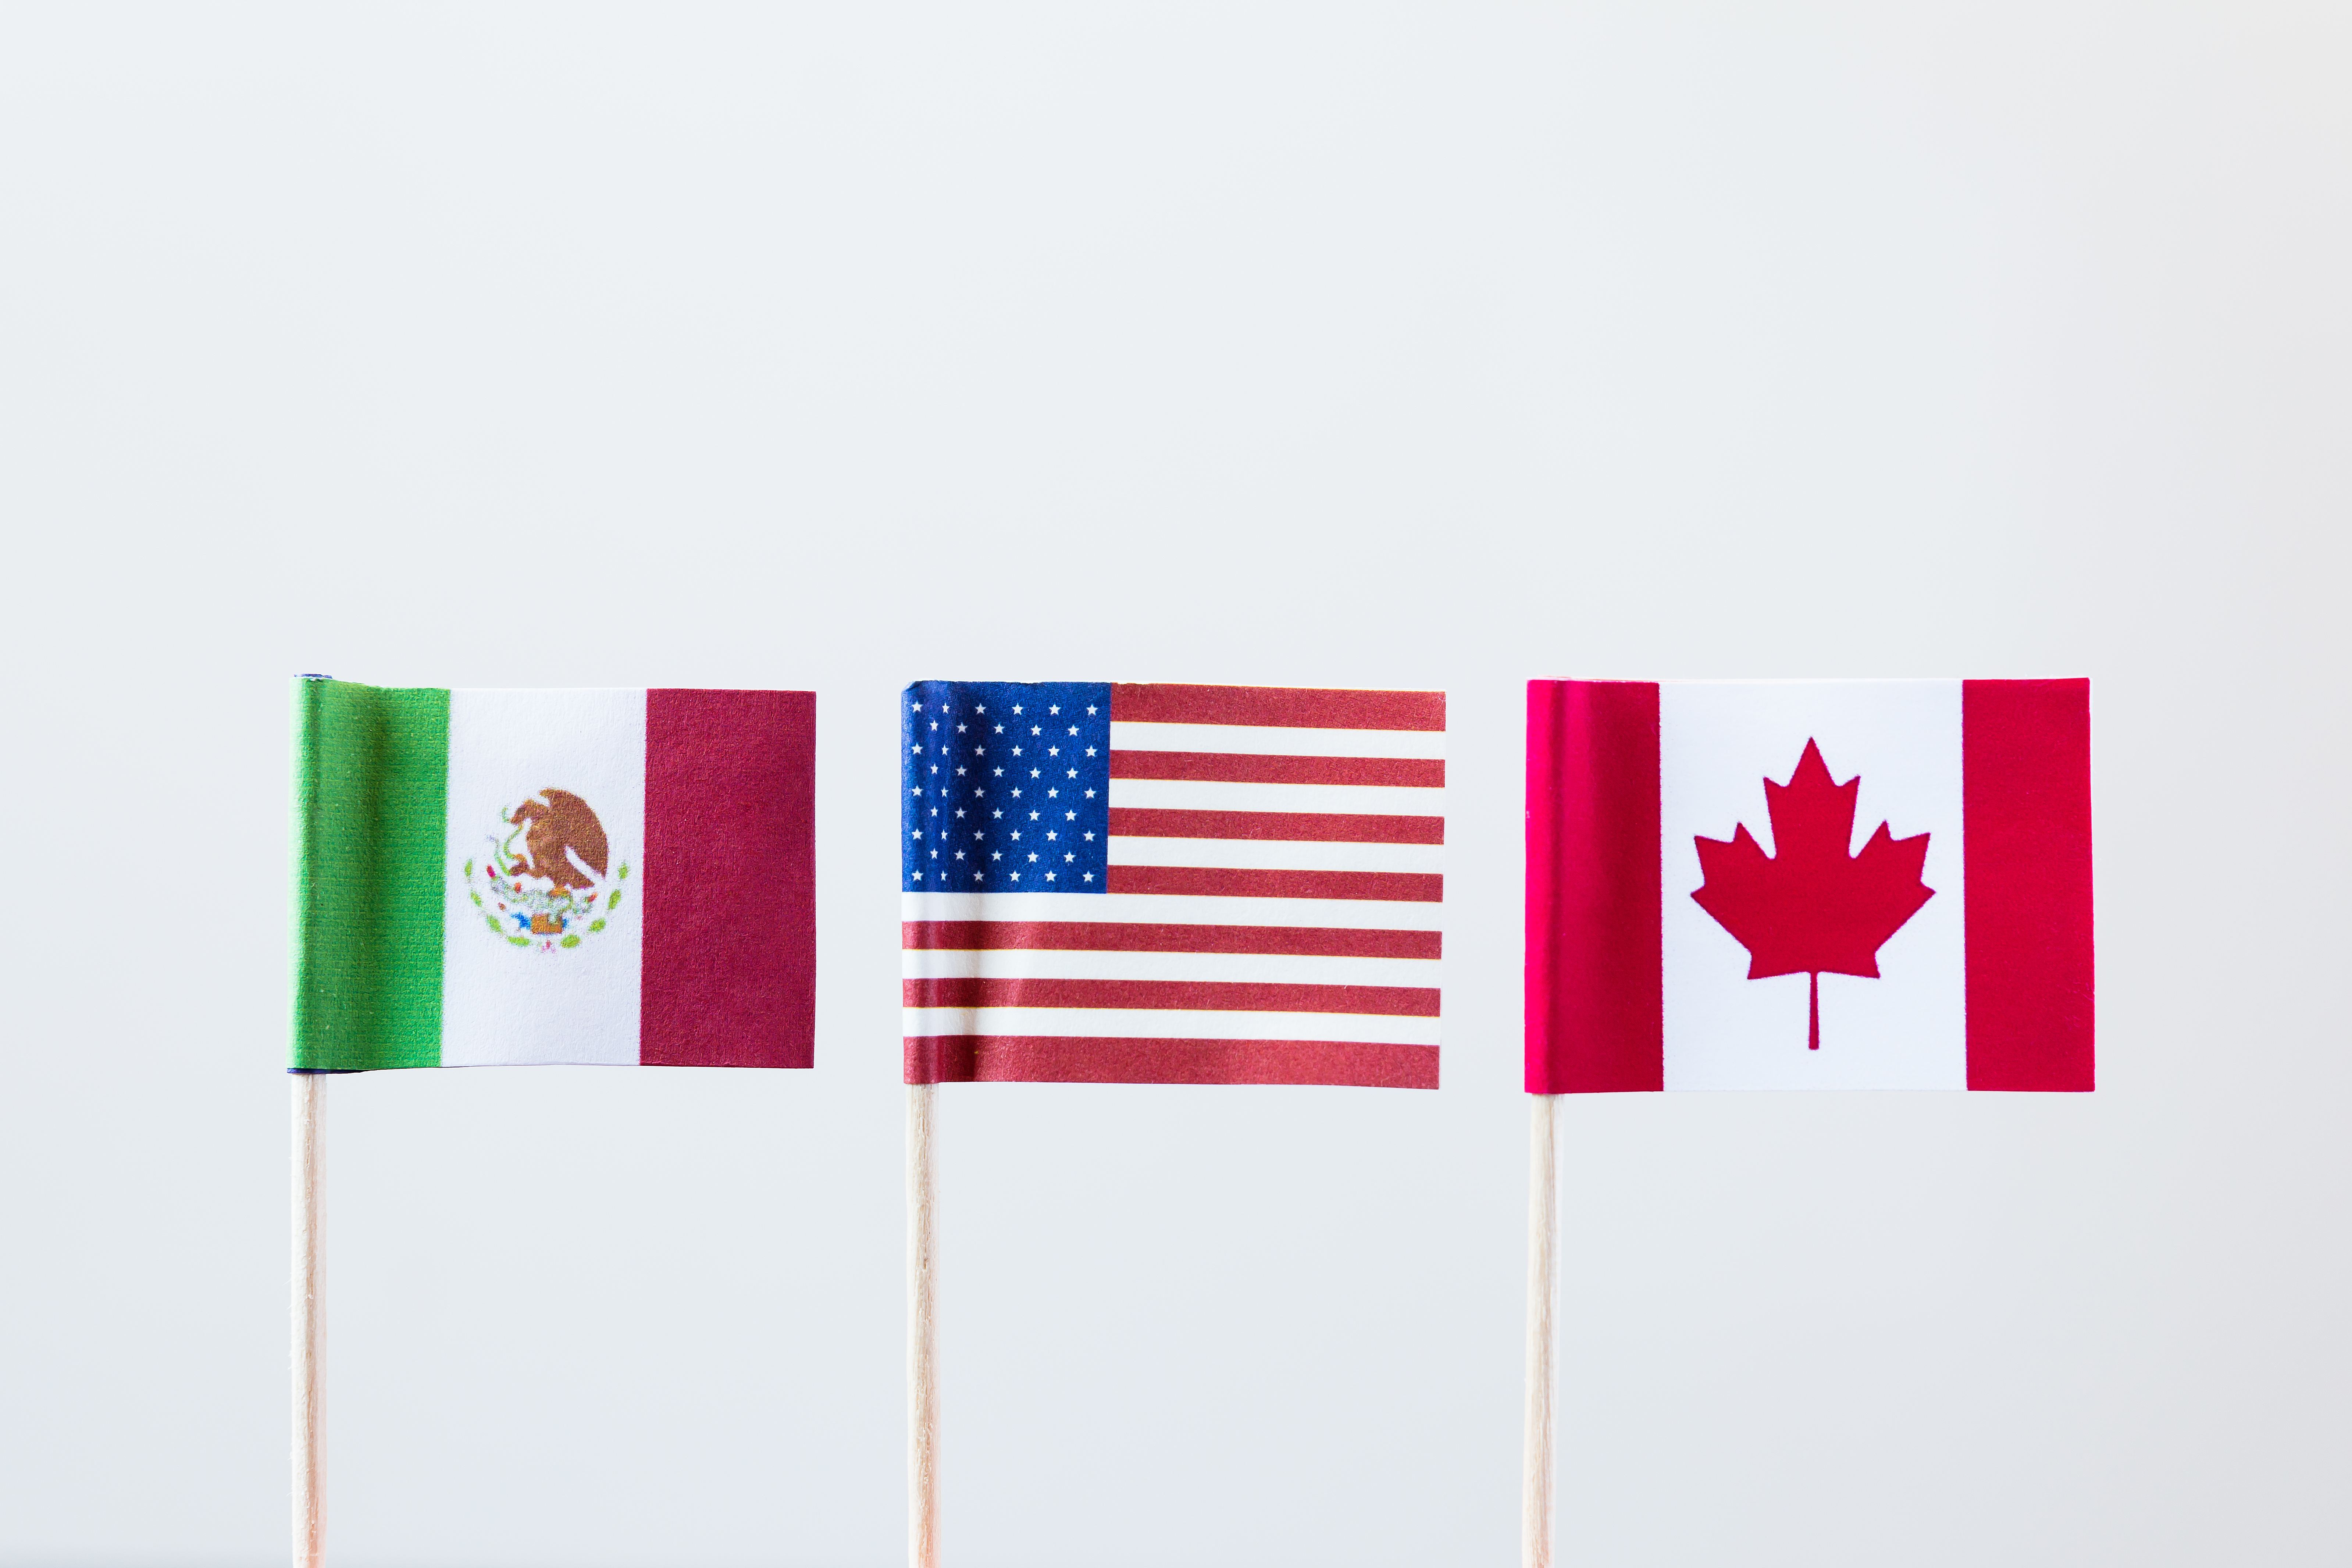 Mexico, United States, Canada flags (©STOCKR - STOCK.ADOBE.COM)